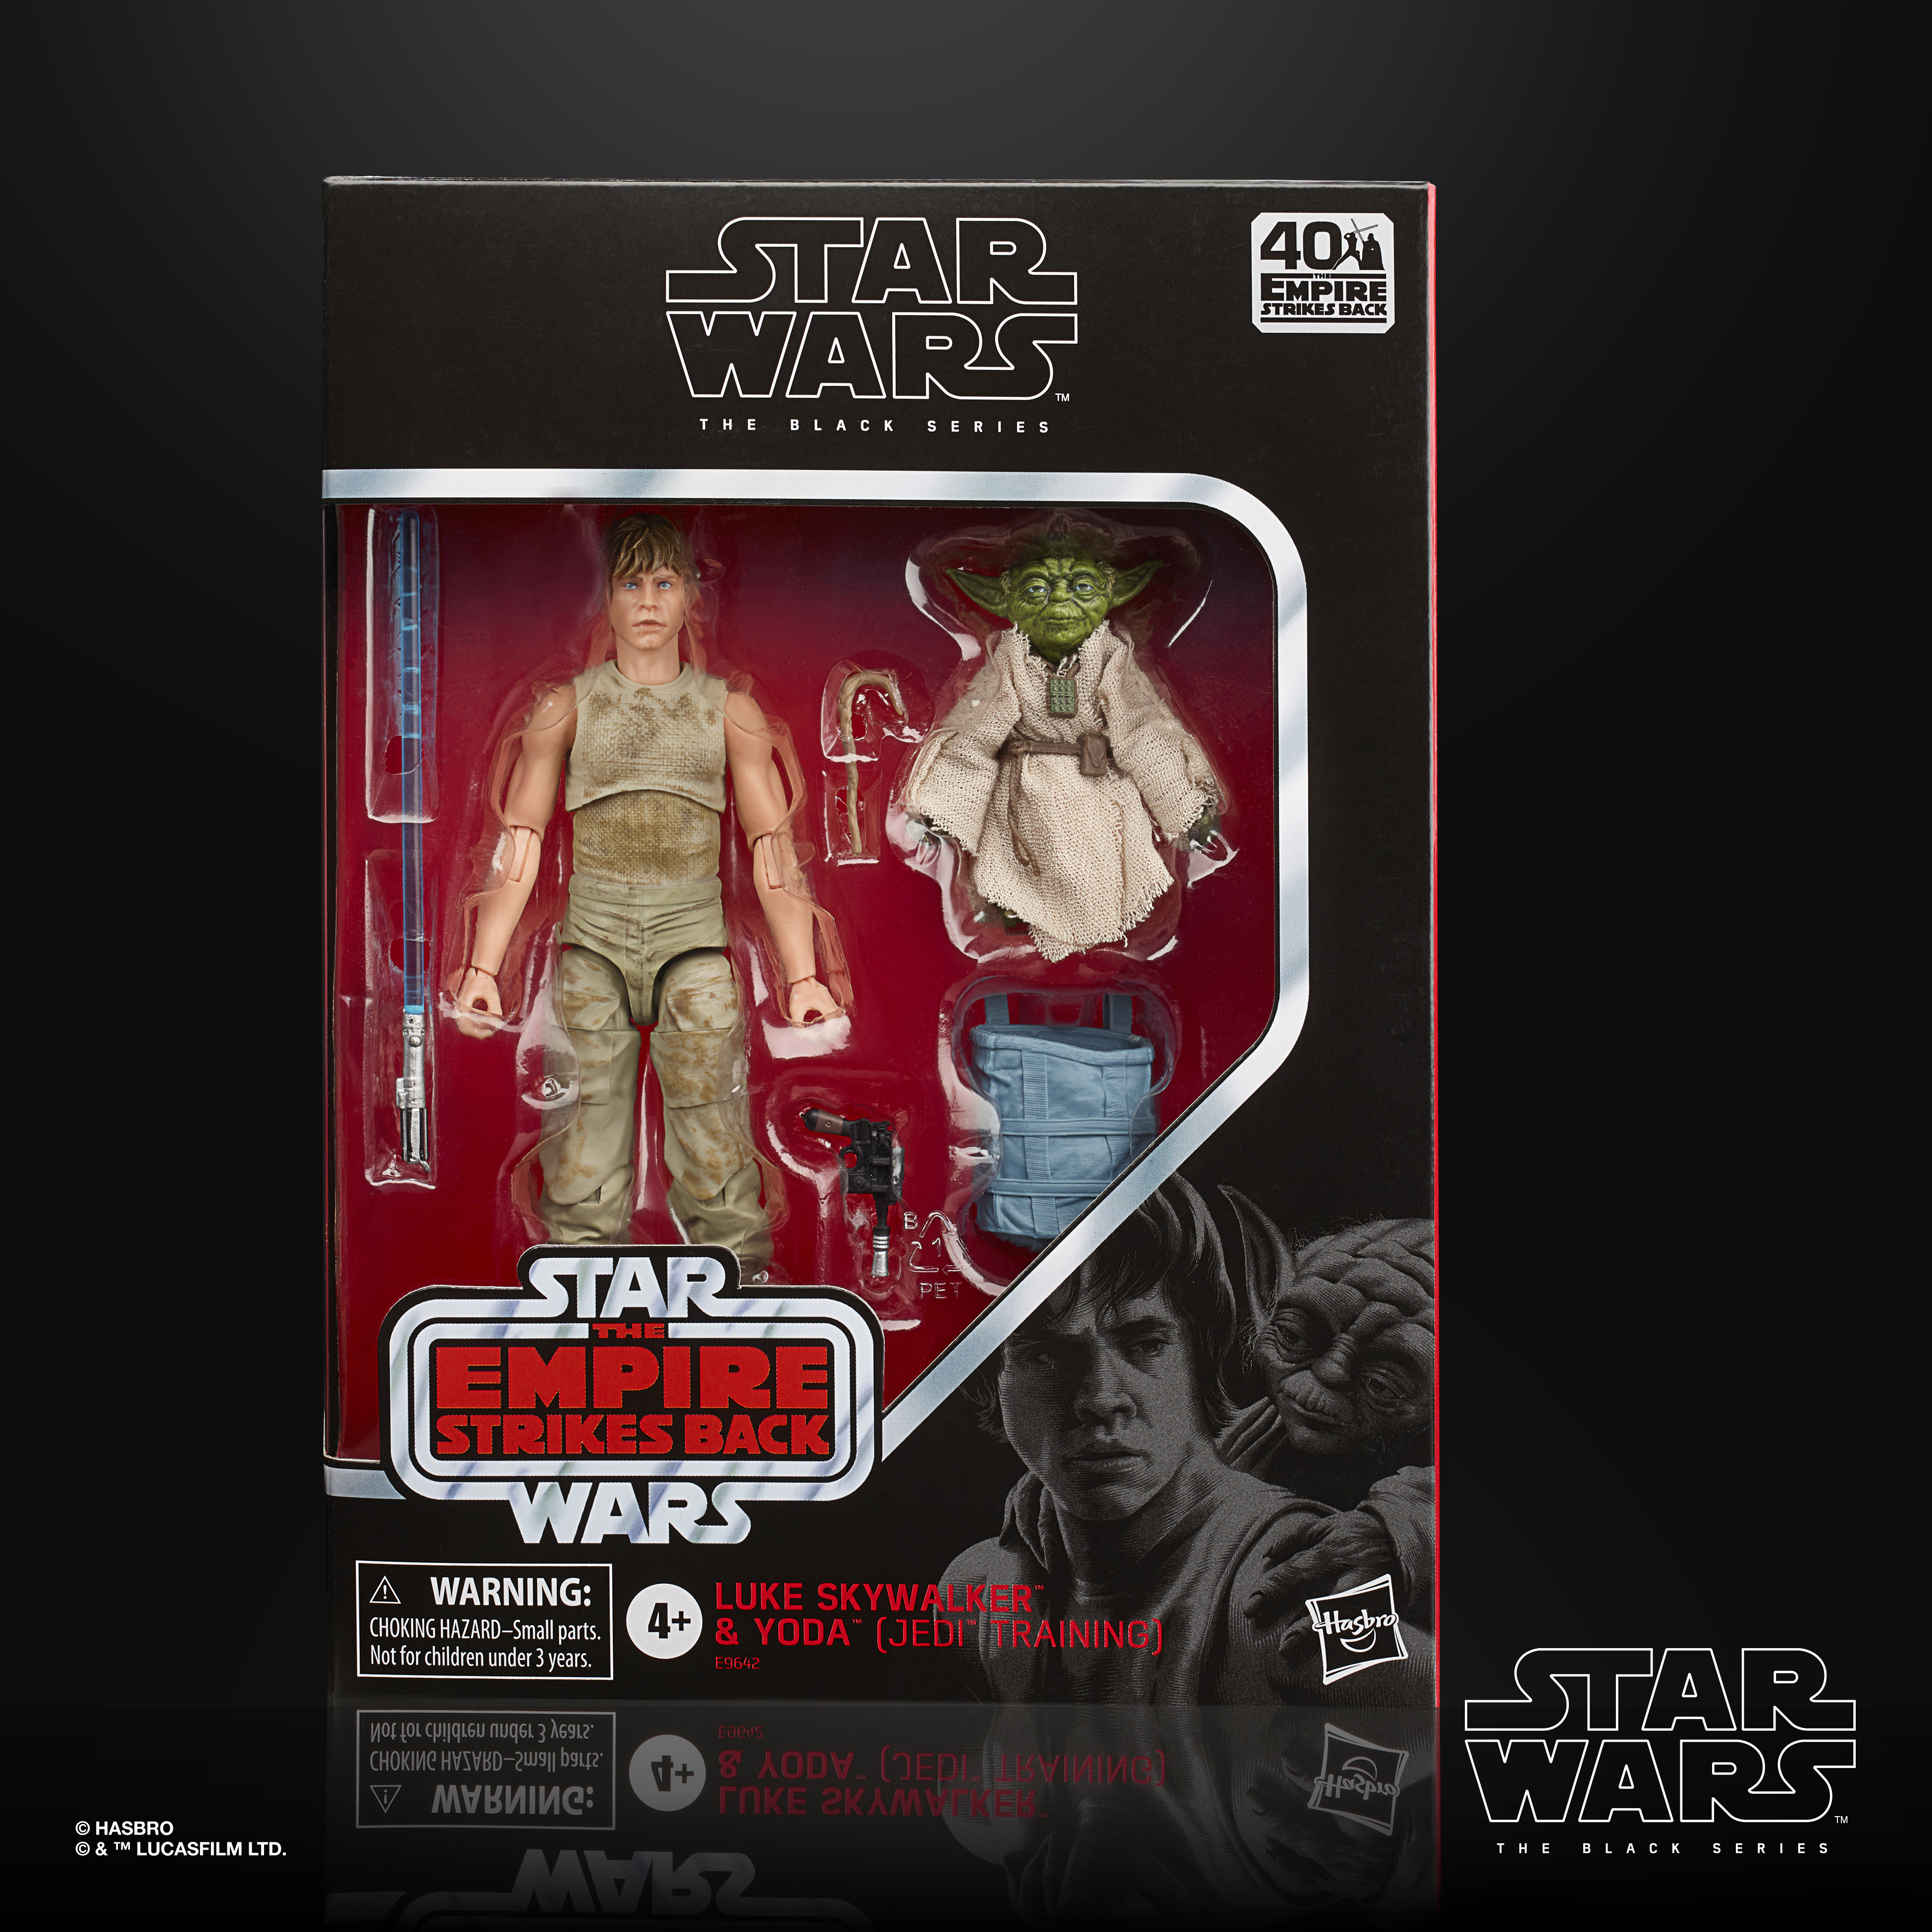 Star Wars The Black Series Luke & Yoda (Jedi Training) Exclusive E9642 5010993722839